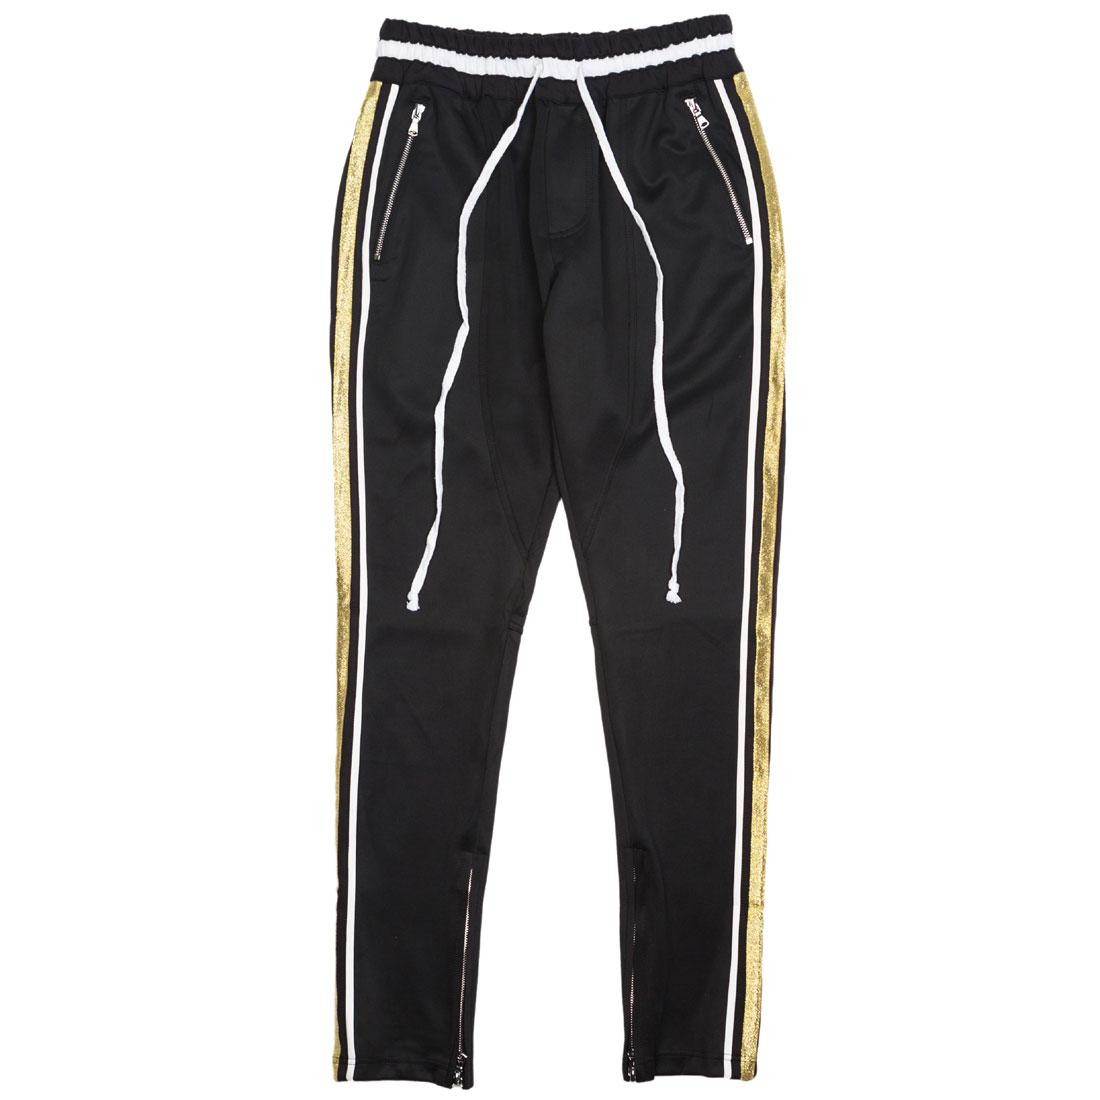 Lifted Anchors Men Jenner Track Pants - BAIT Exclusive (black / white / gold)